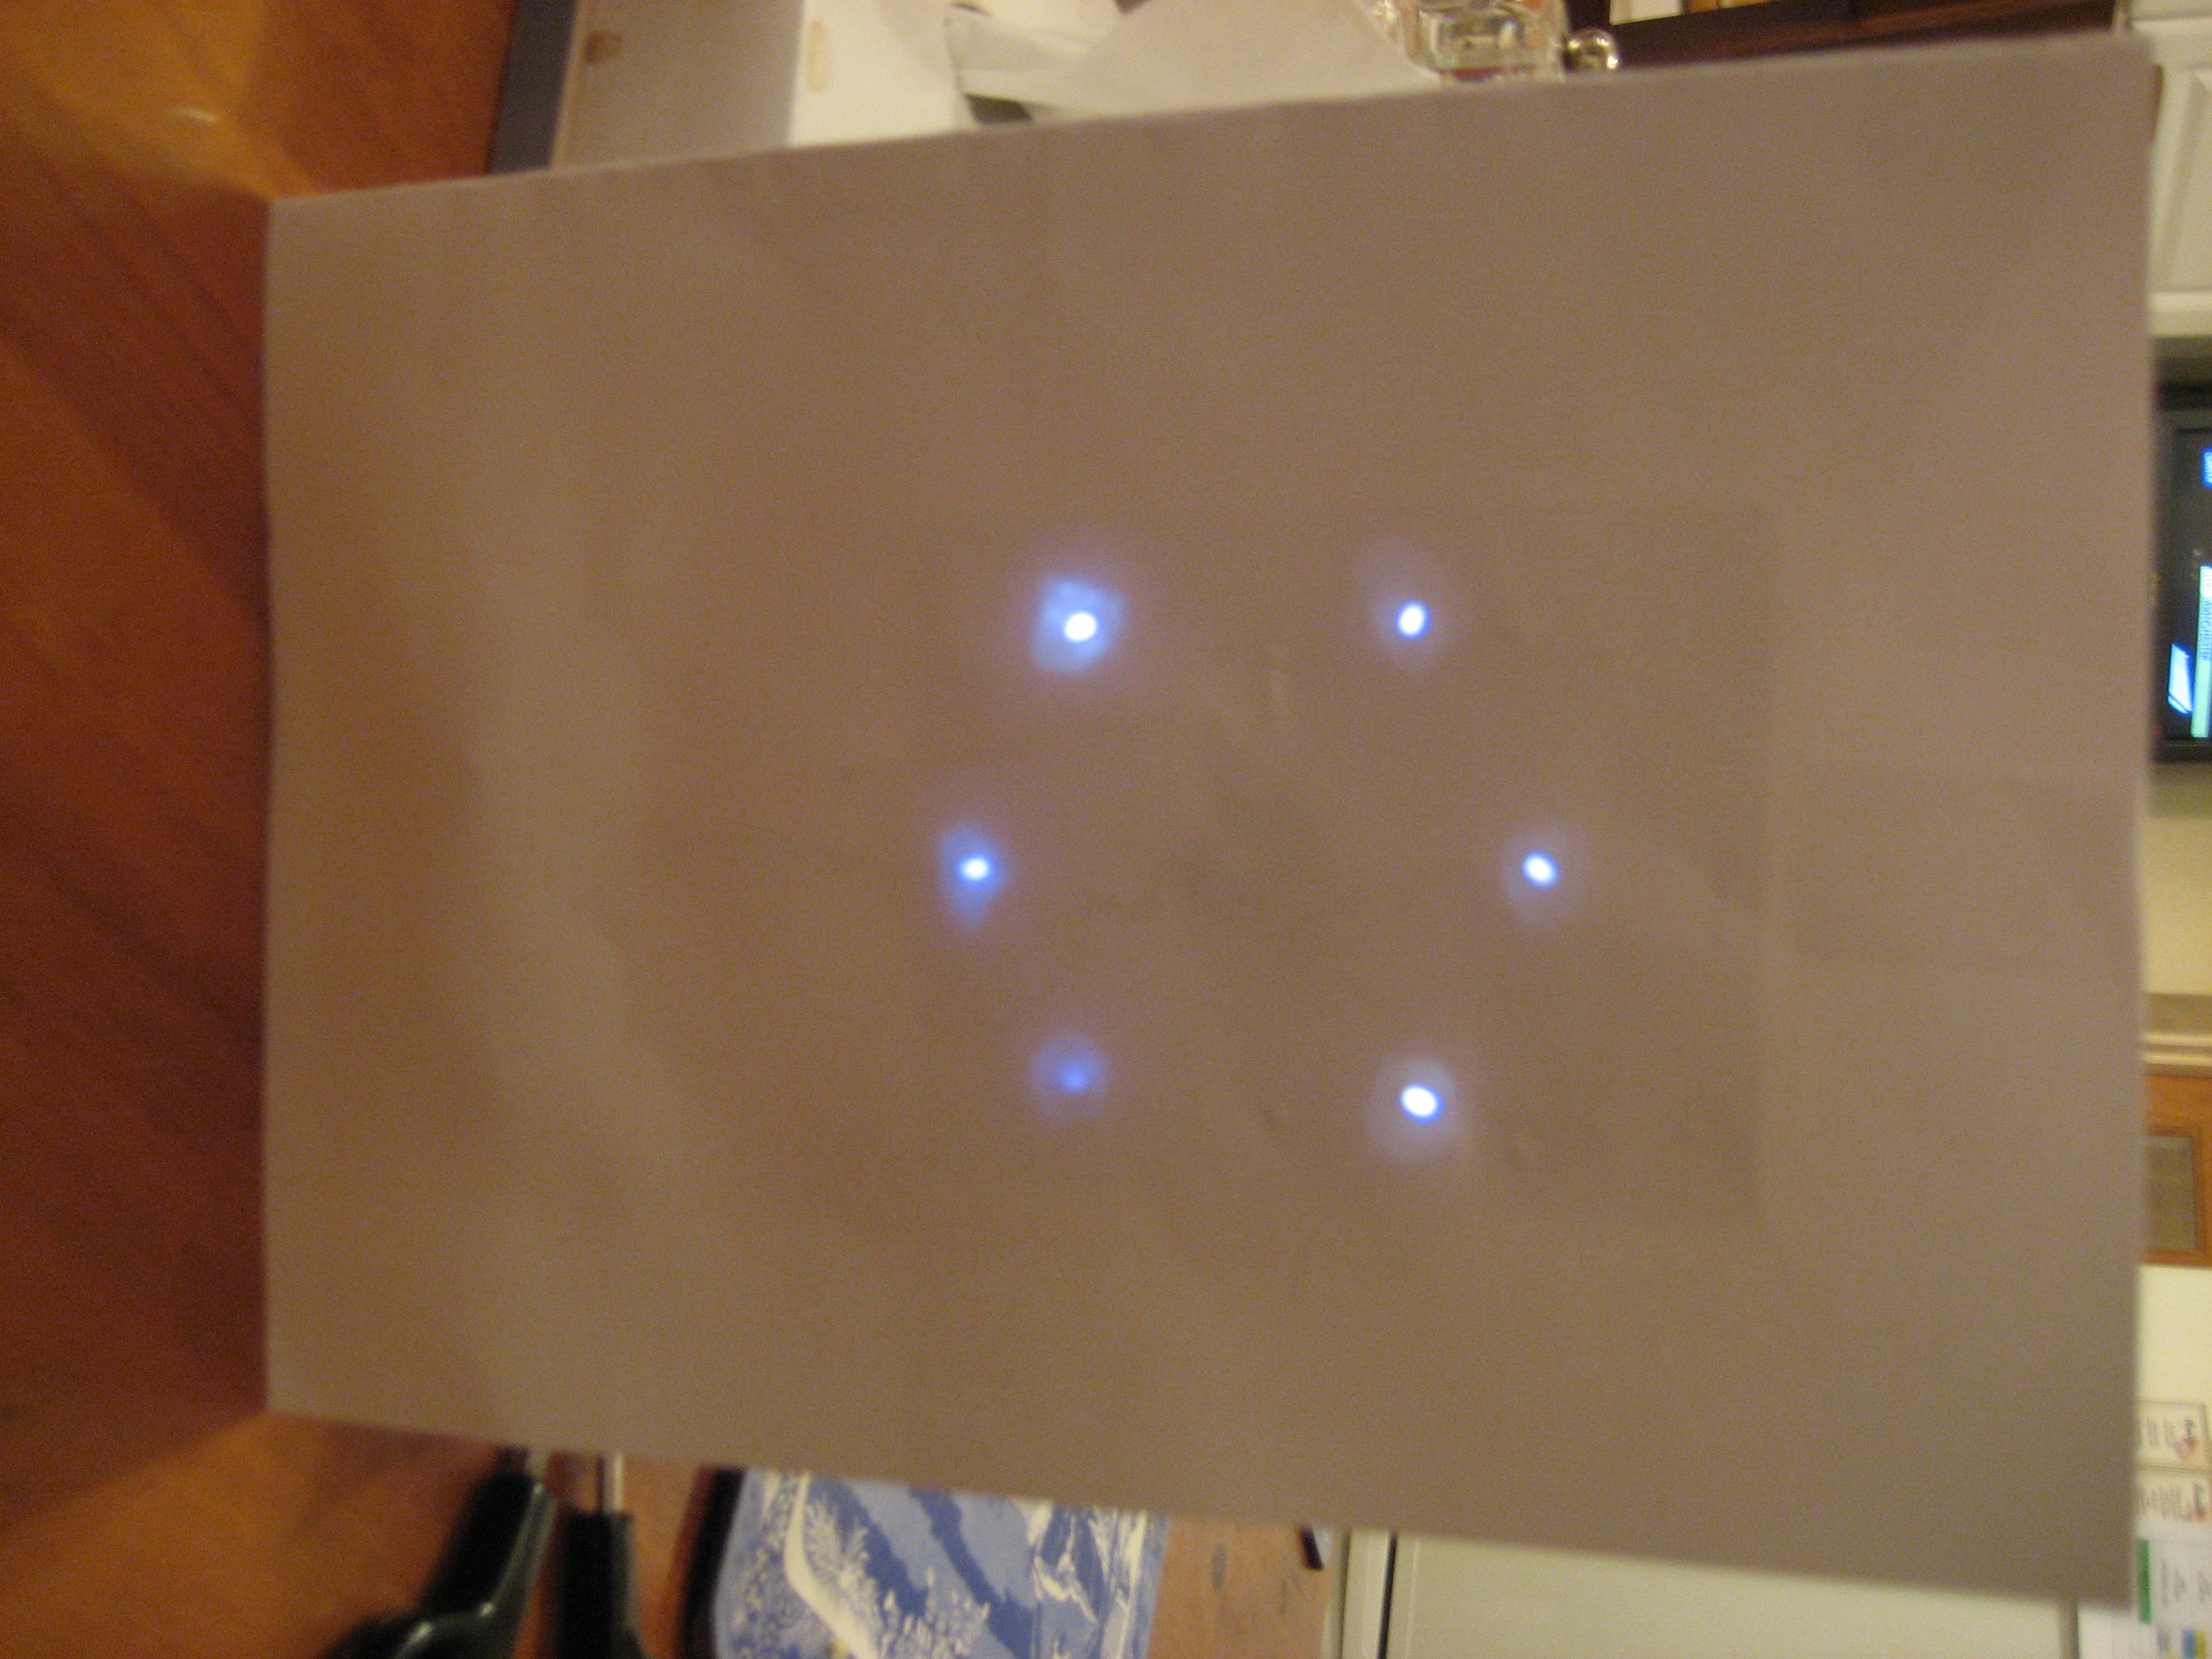 LED Christmas Cards using PIC 10F200